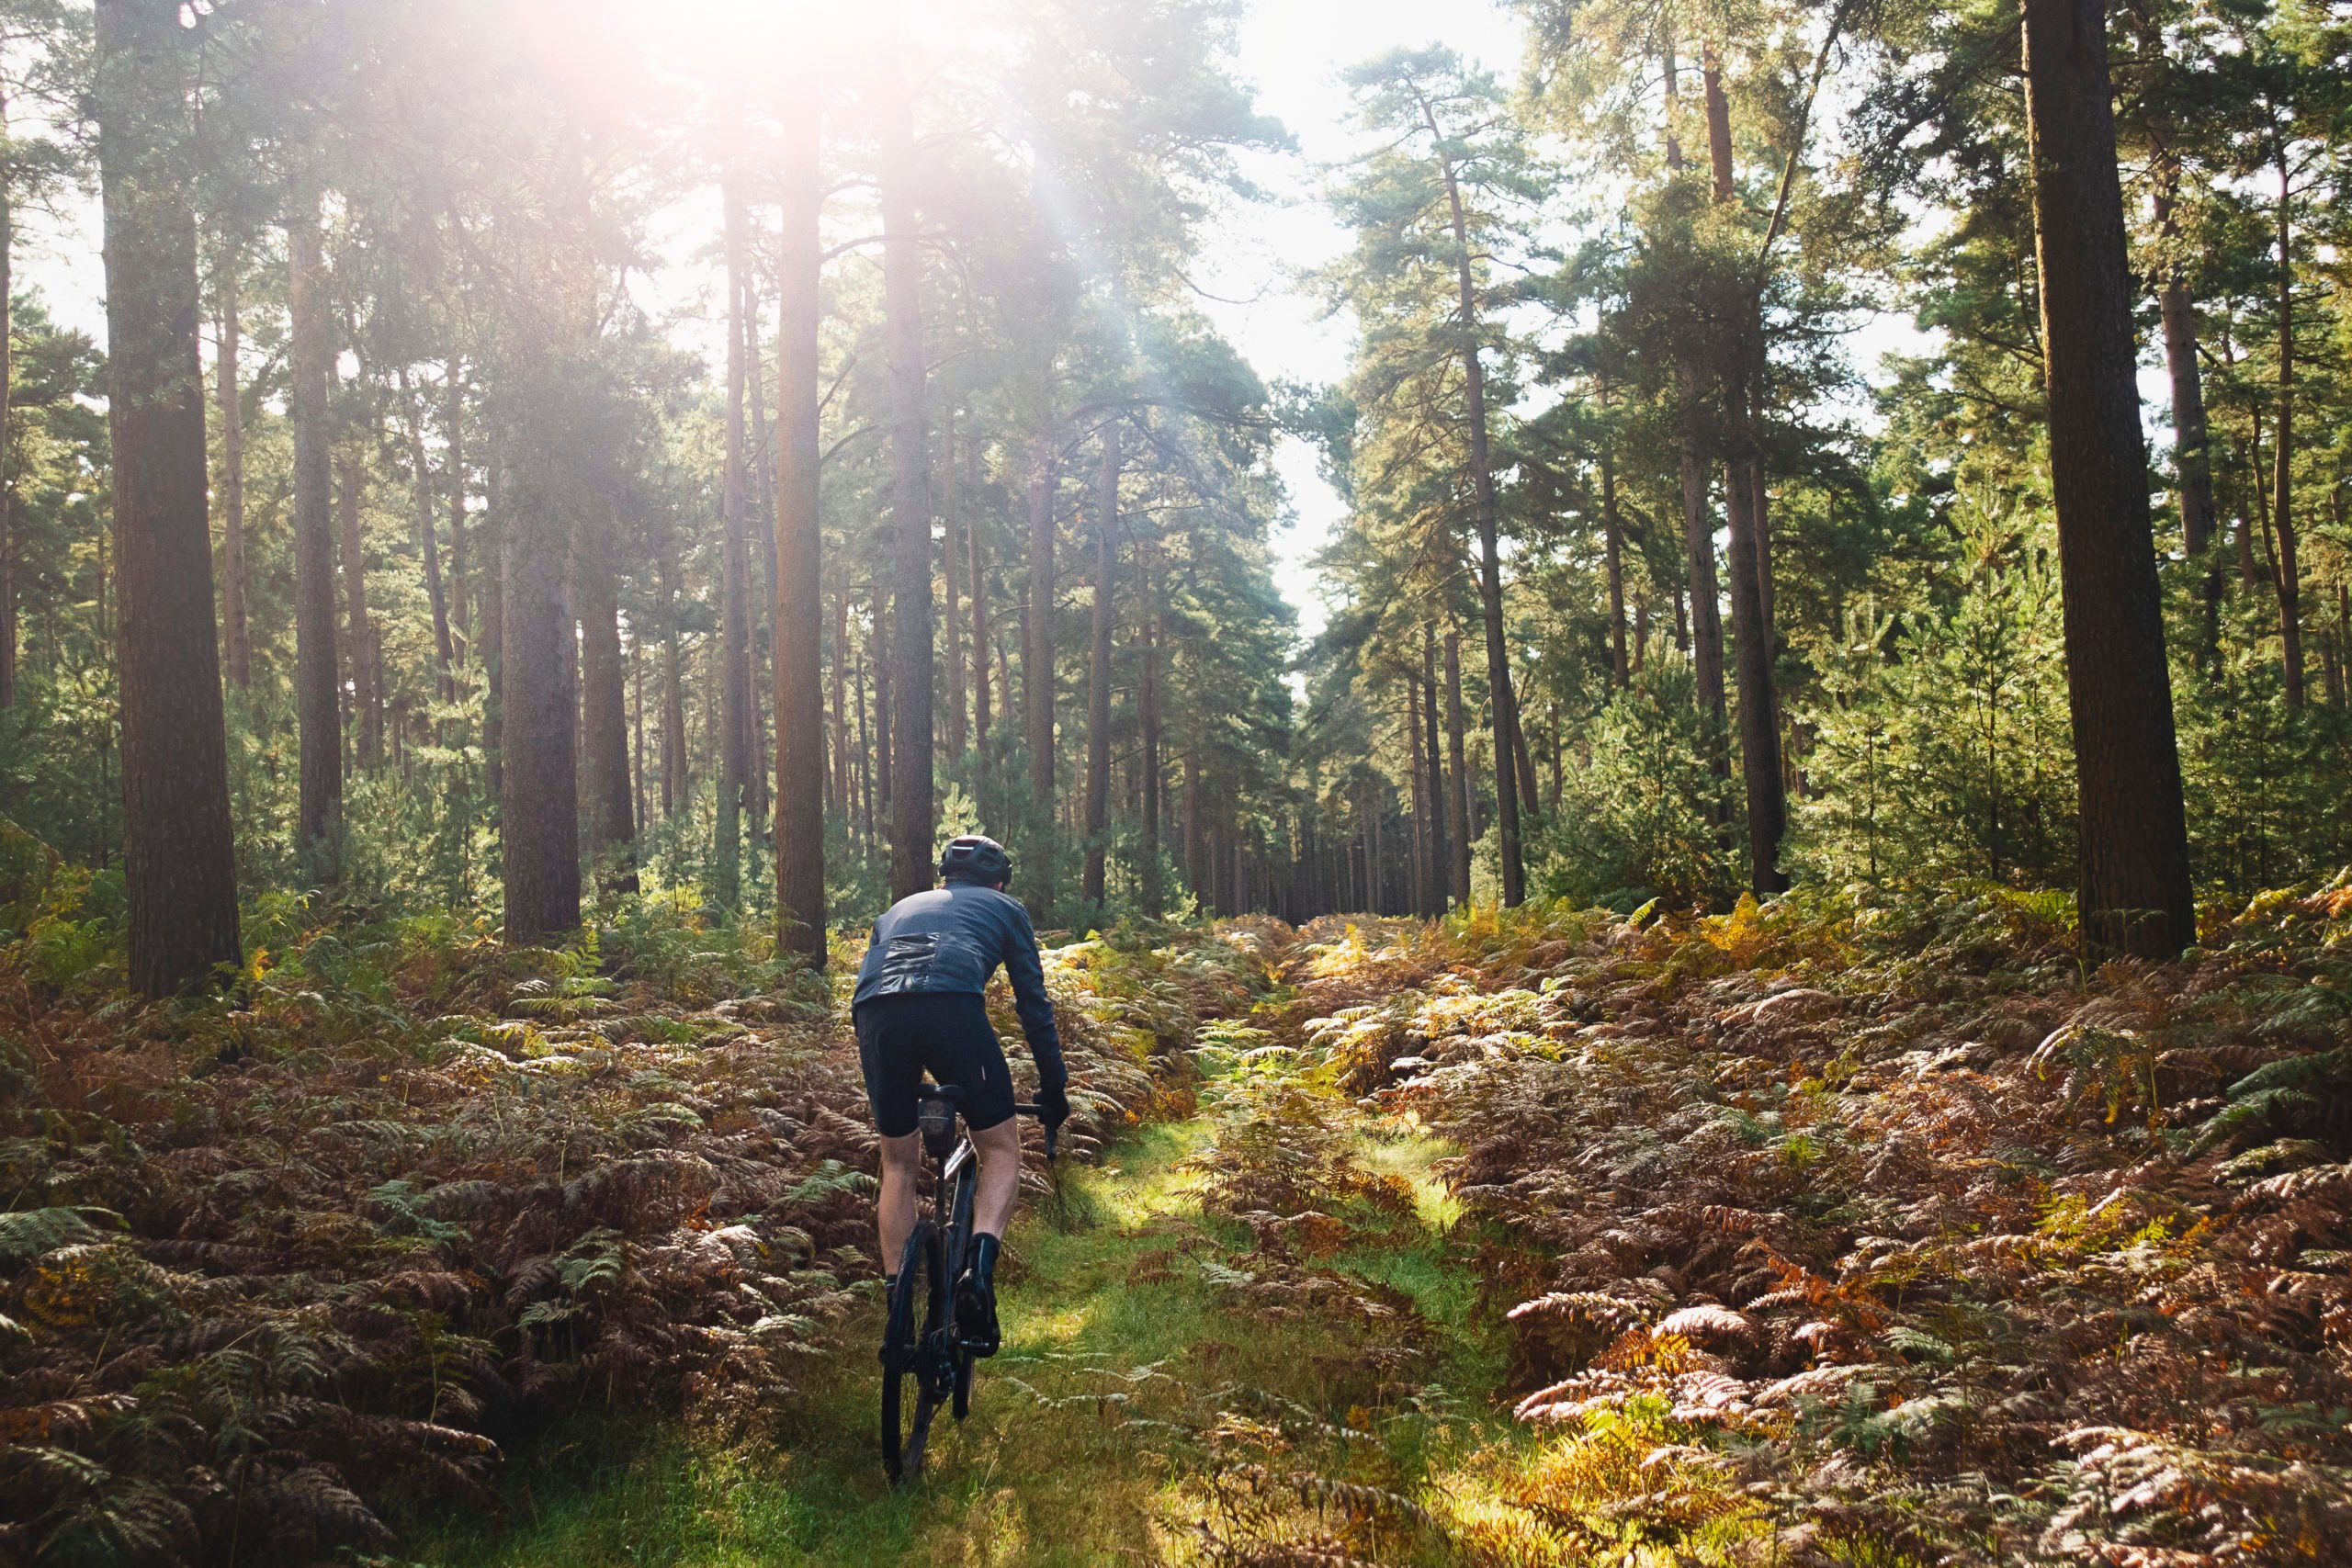 Cyclist on forest path